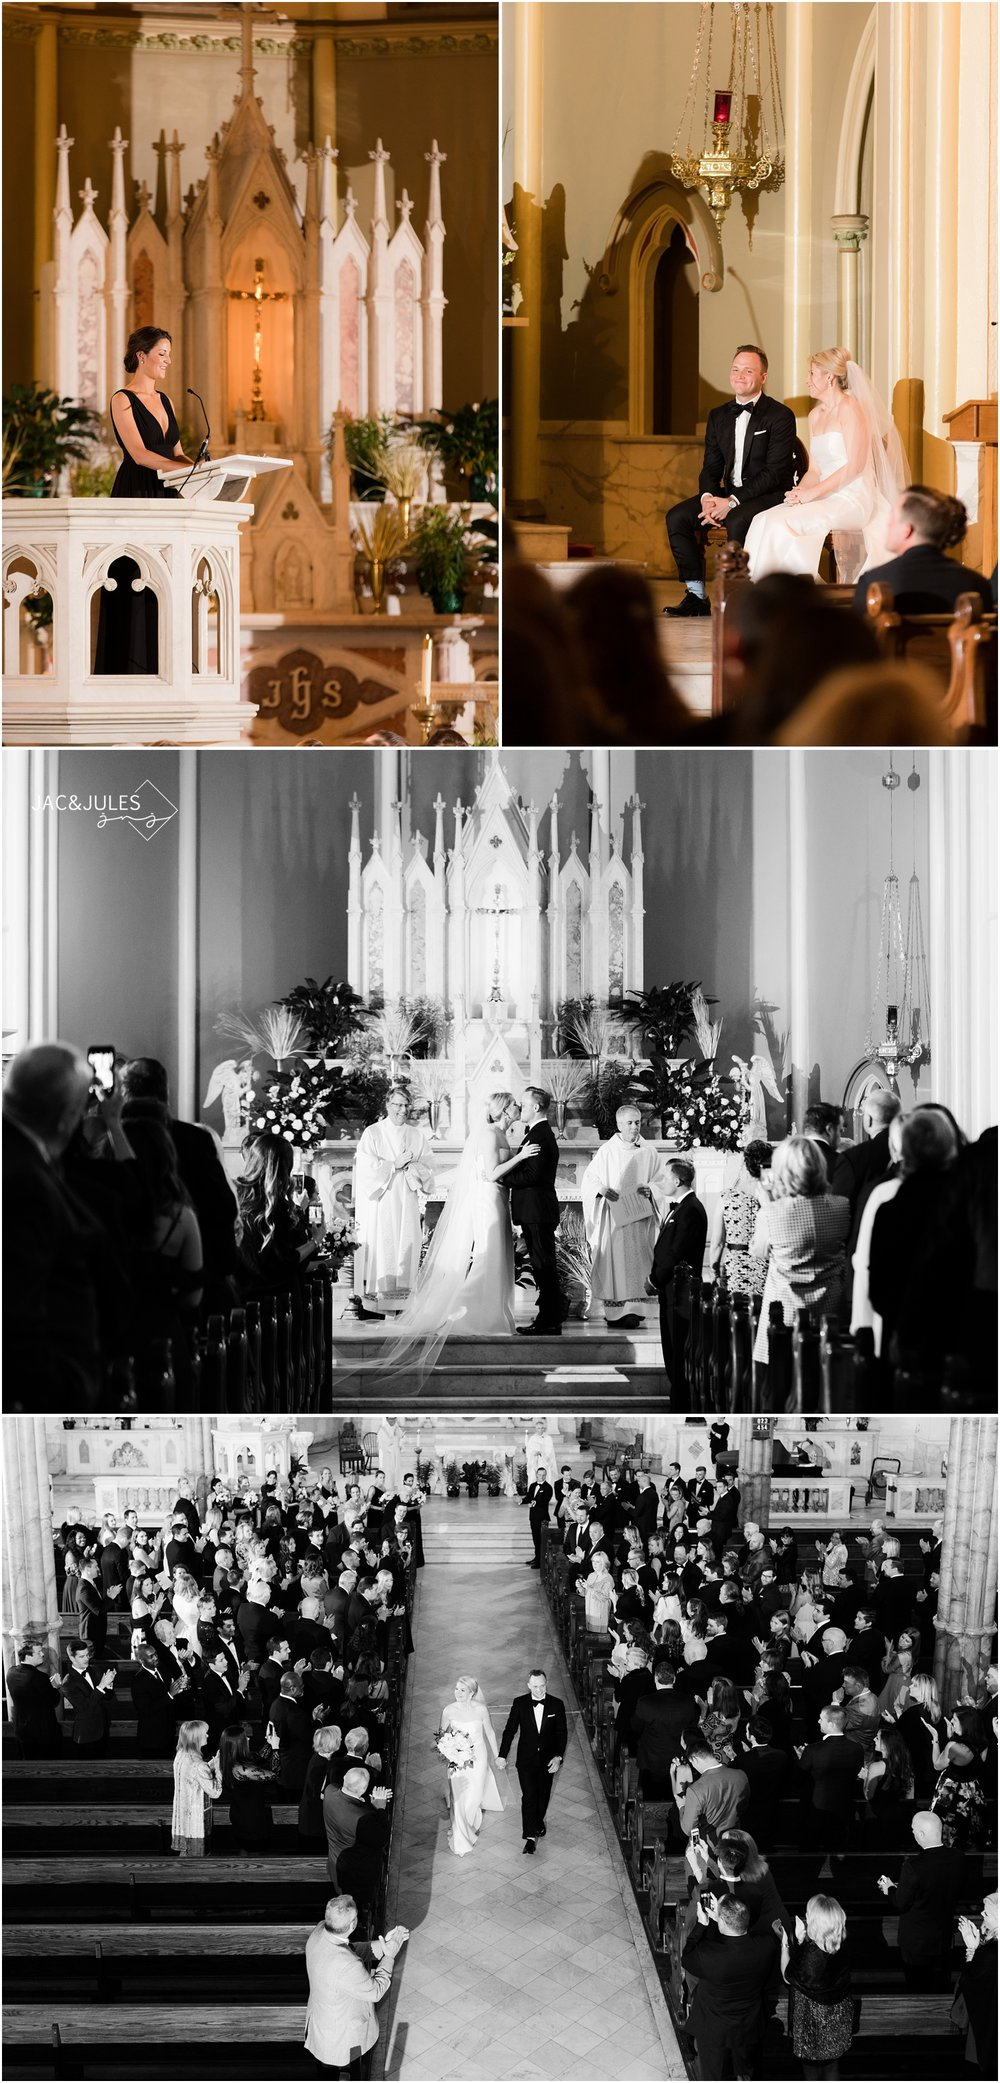 Wedding ceremony at Holy Cross Church in Baltimore, MD.